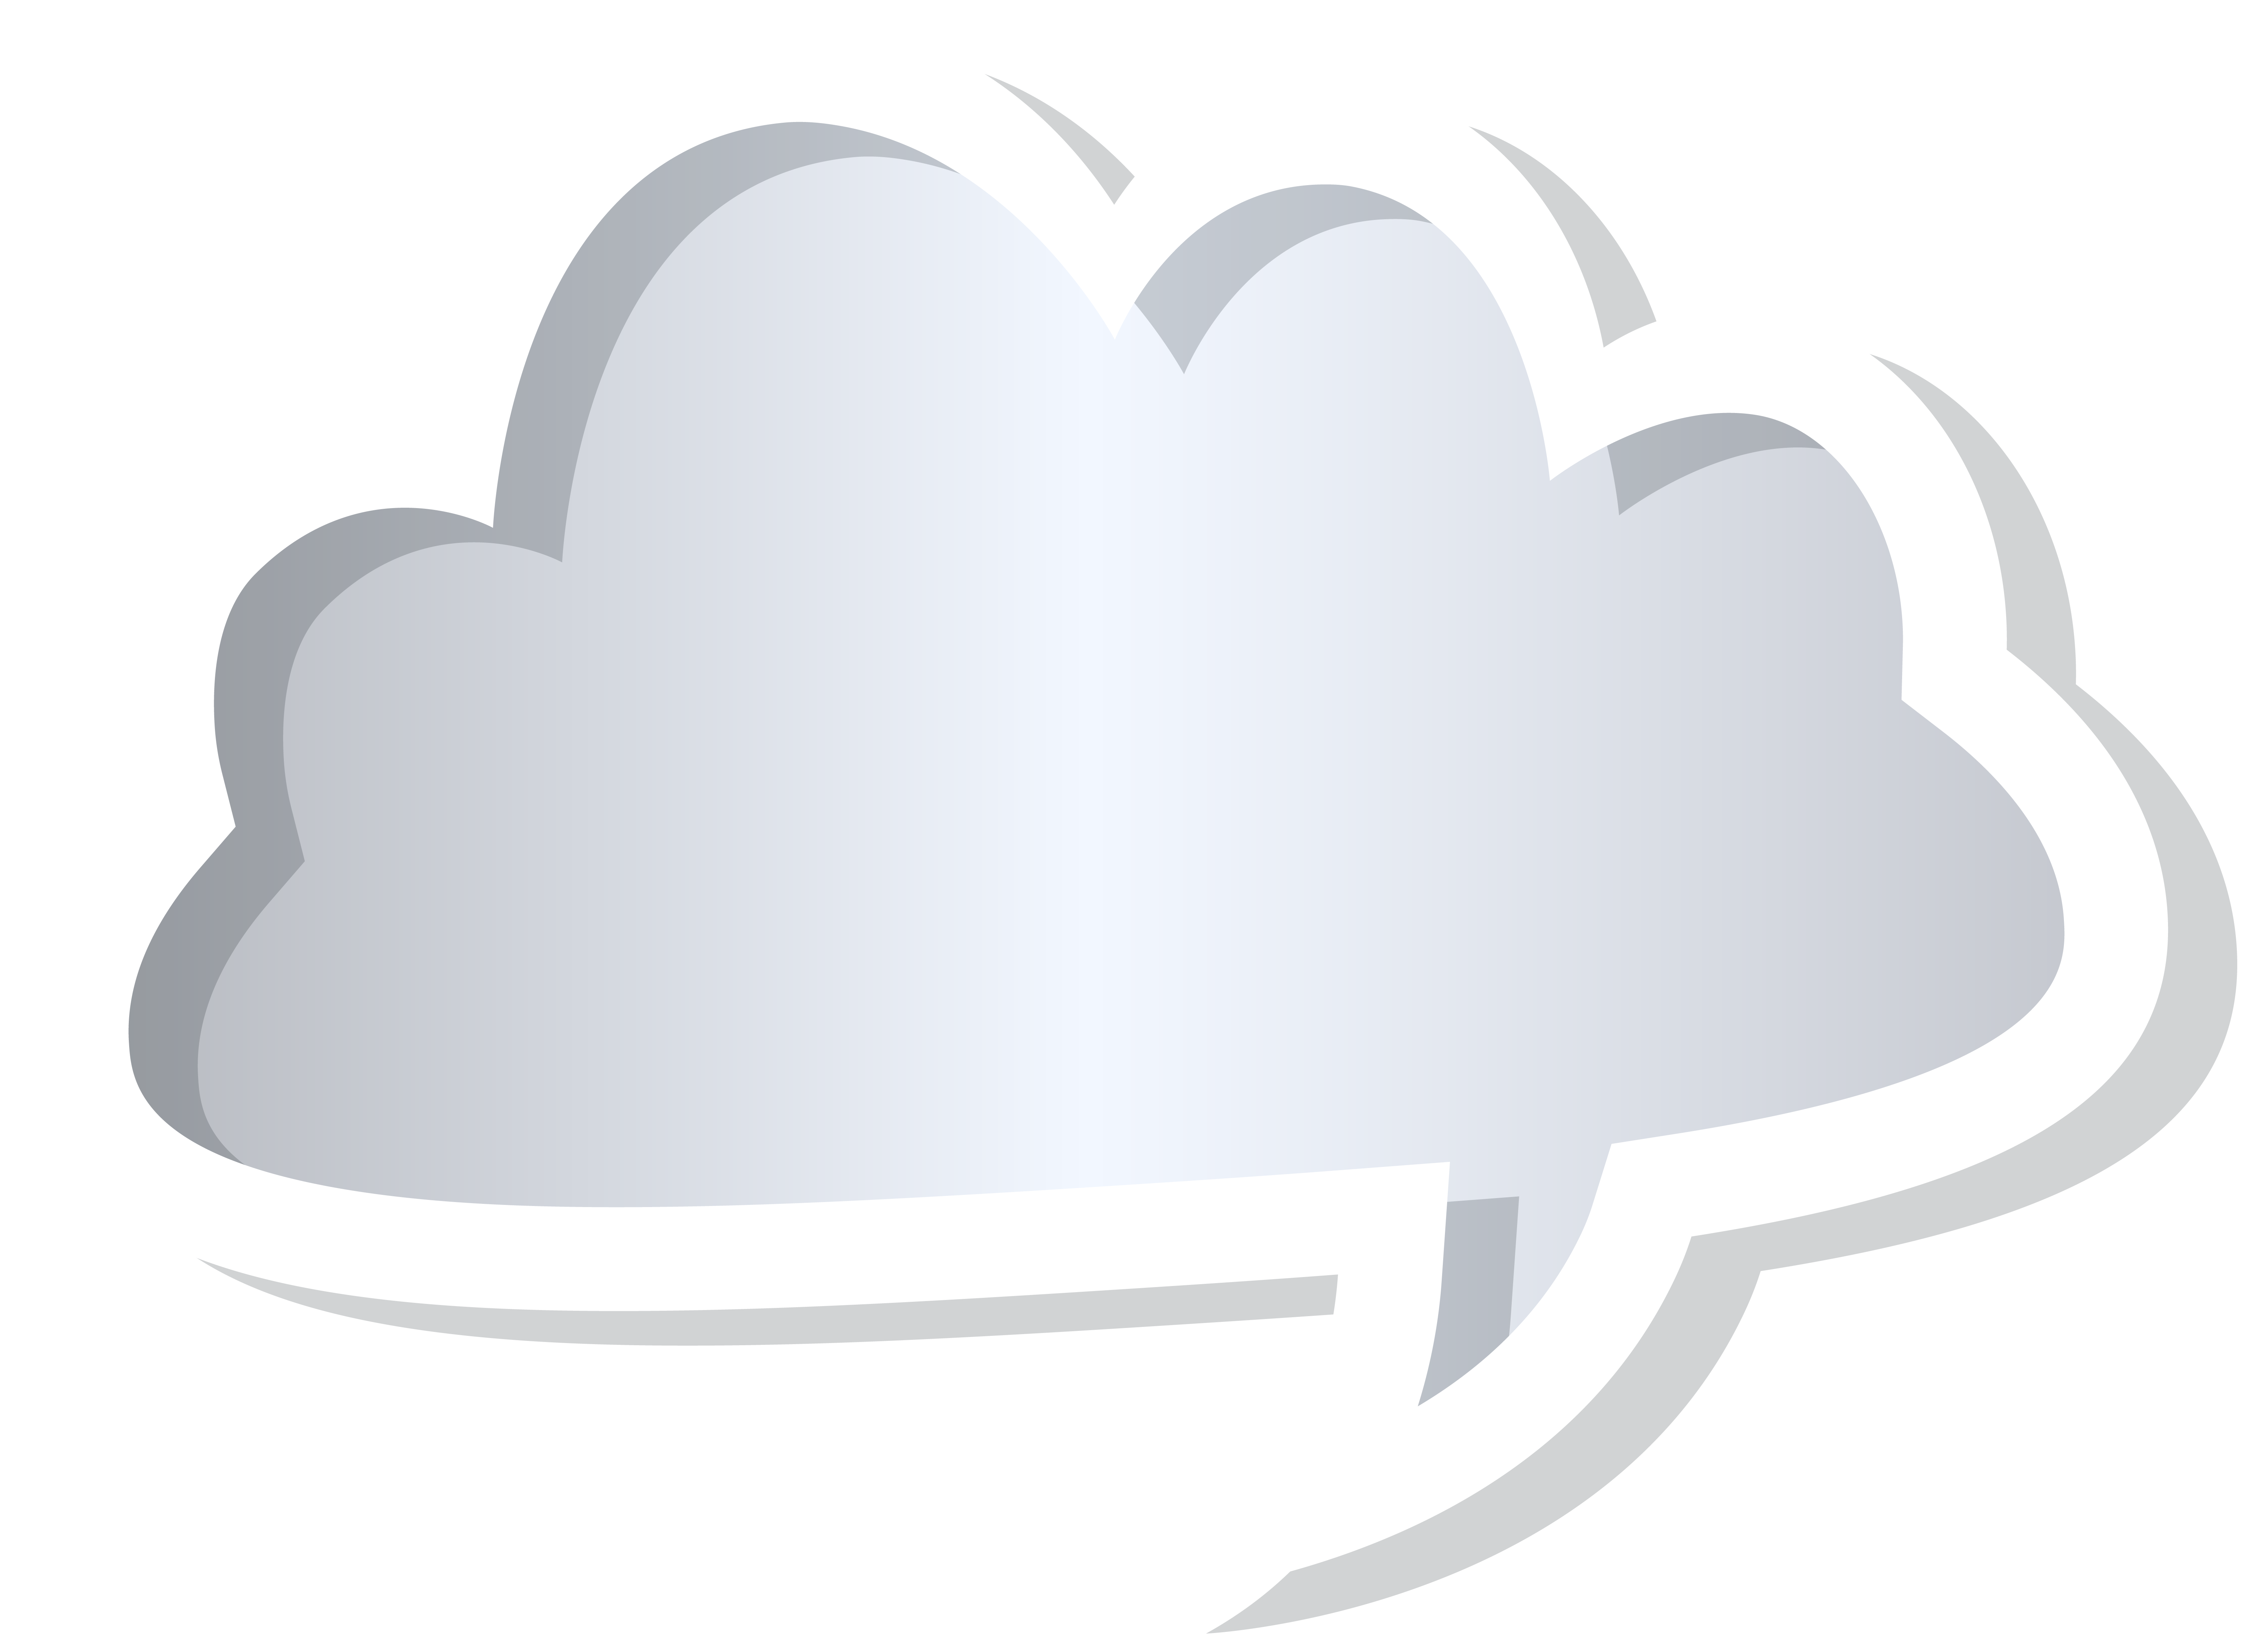 graphic free library Grey png clip art. Cloud clipart speech bubble.